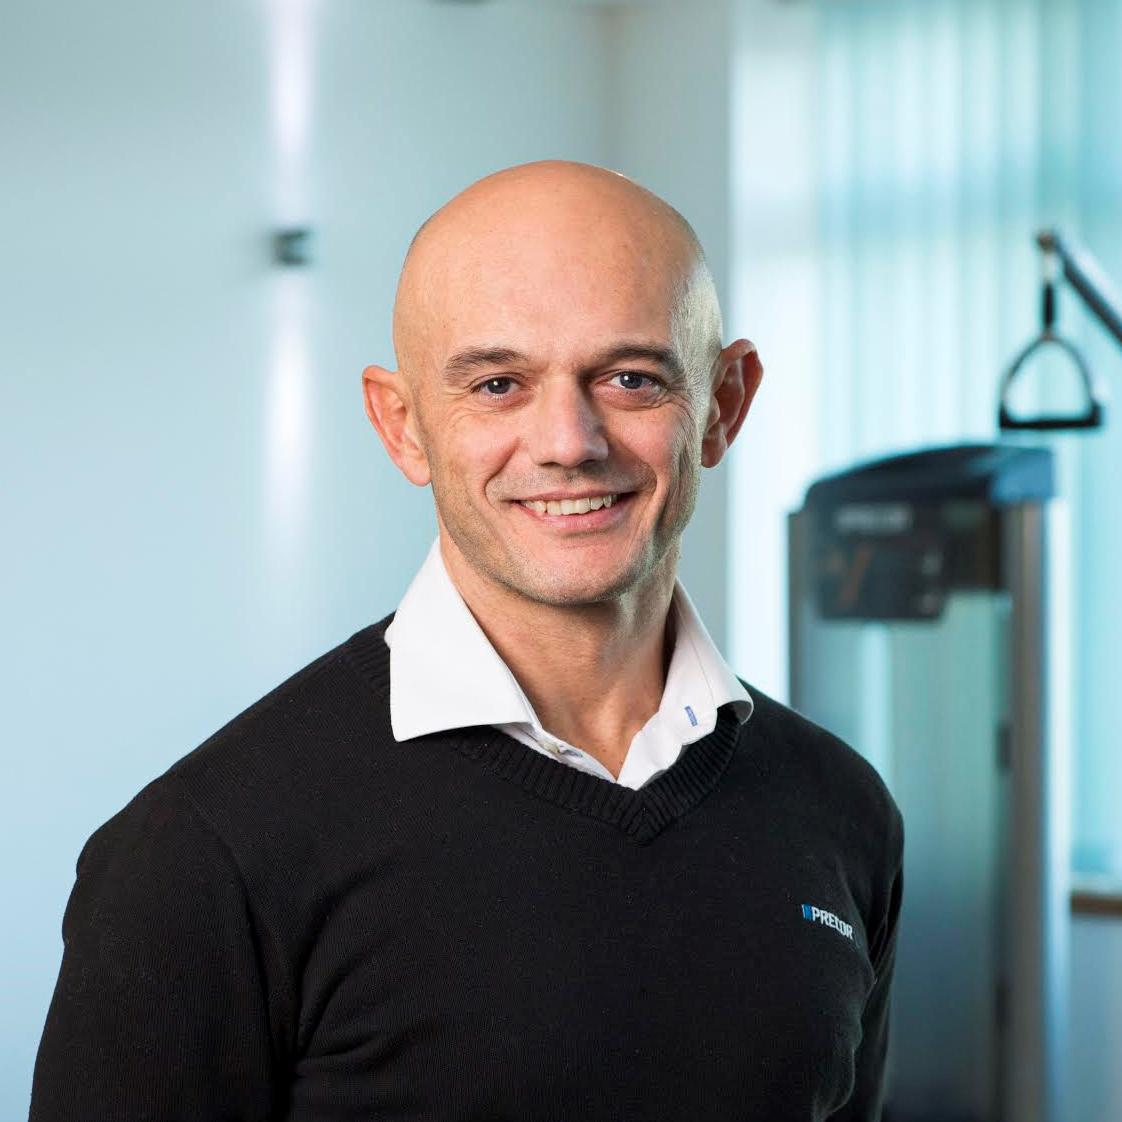 Justin Smith, head of UK at Precor, which has helped kit out the Anytime Fitness gym